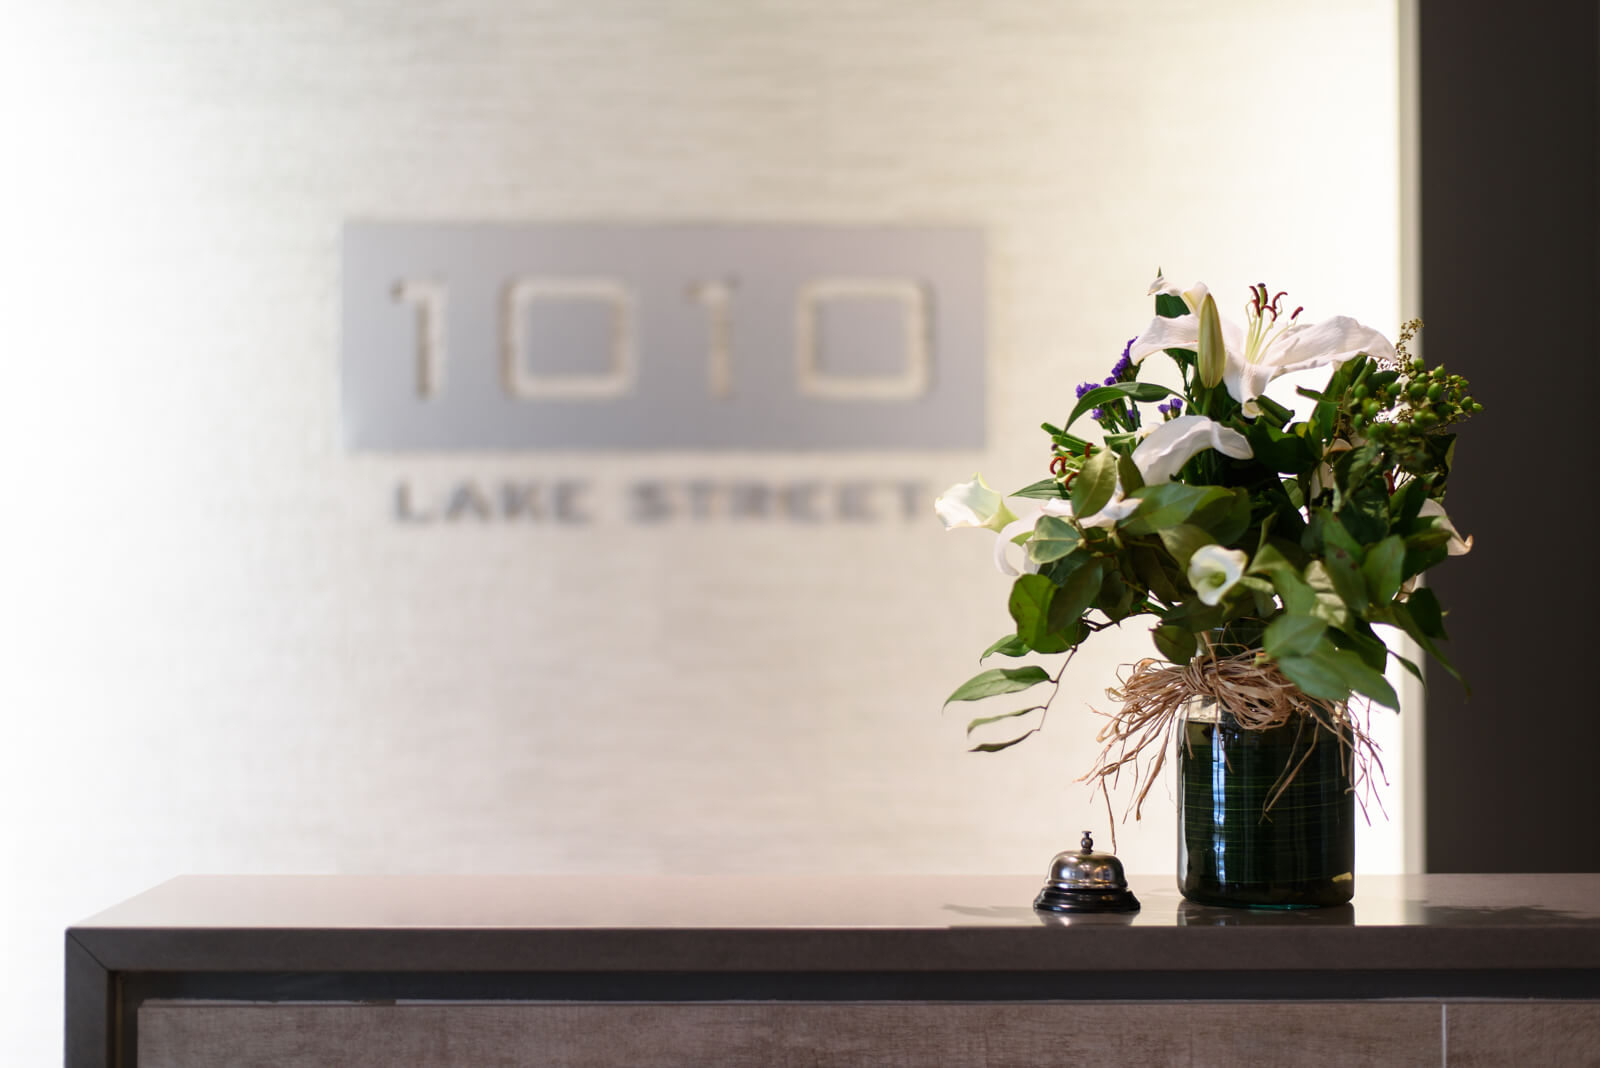 Concierge services at 1010 Lake Street, Downtown Oak Park, IL